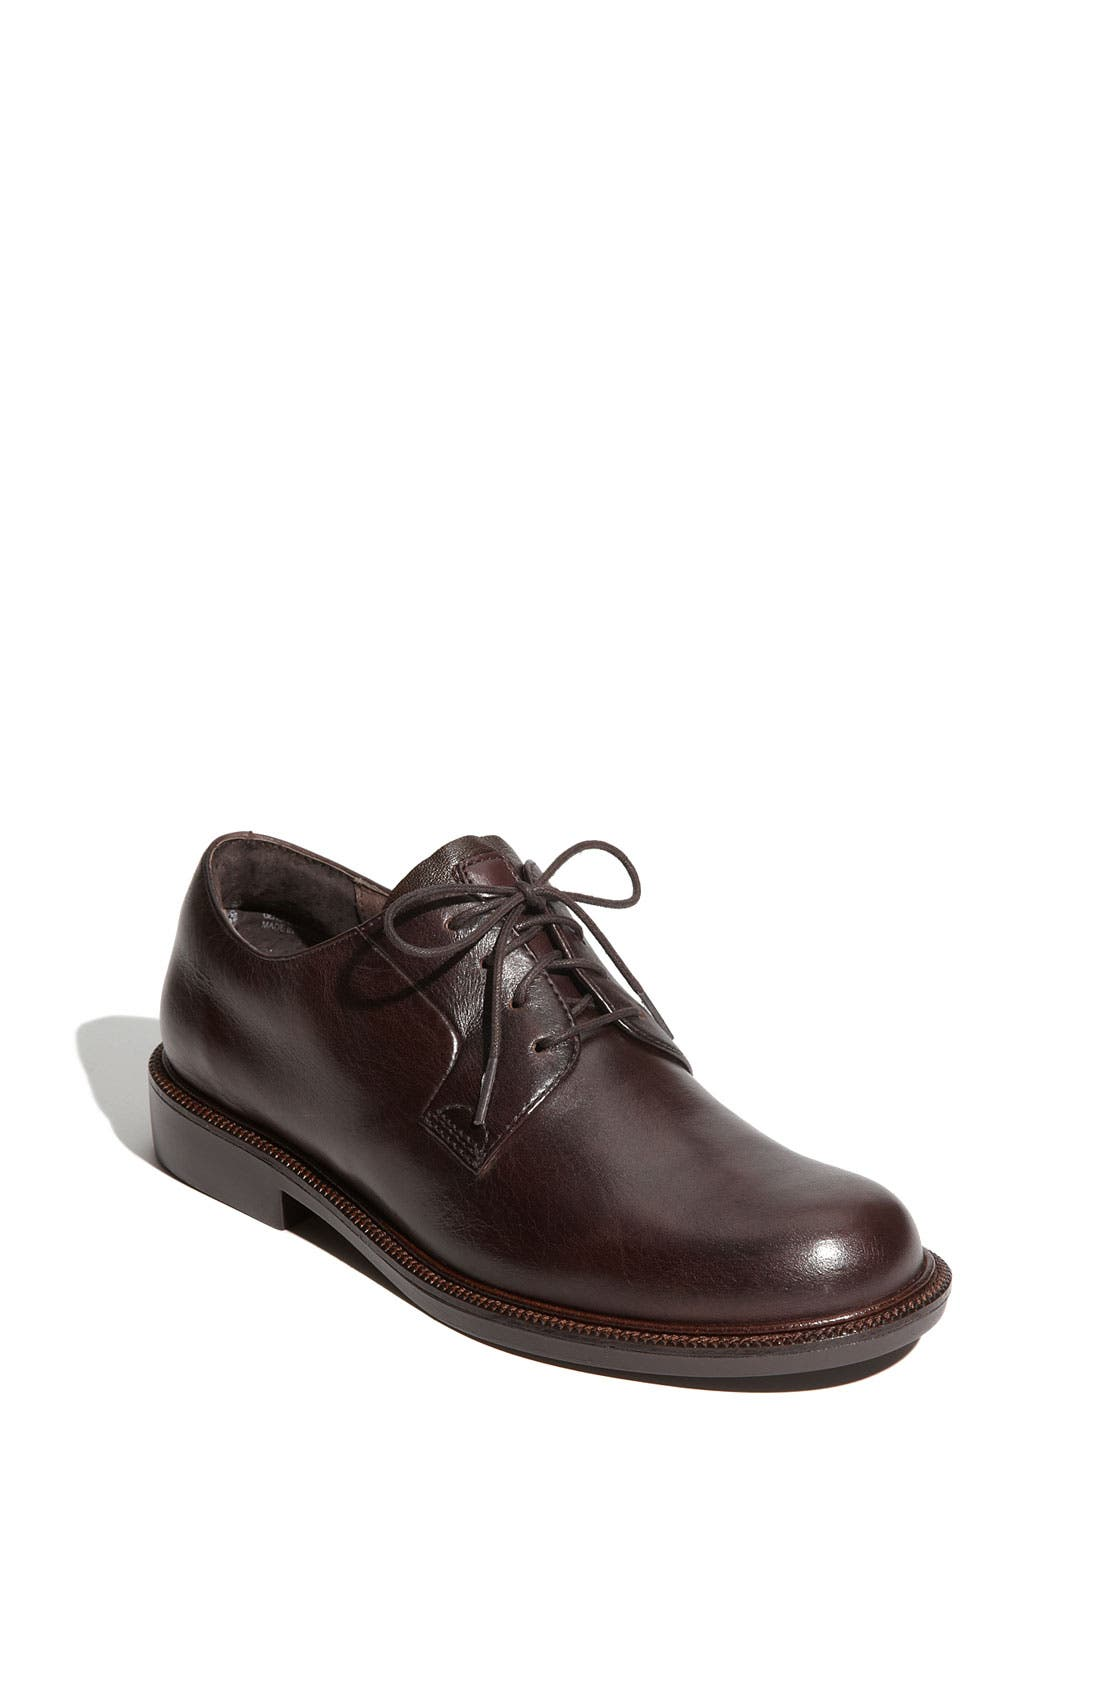 Alternate Image 1 Selected - Nordstrom 'Braden' Oxford (Toddler, Little Kid & Big Kid)